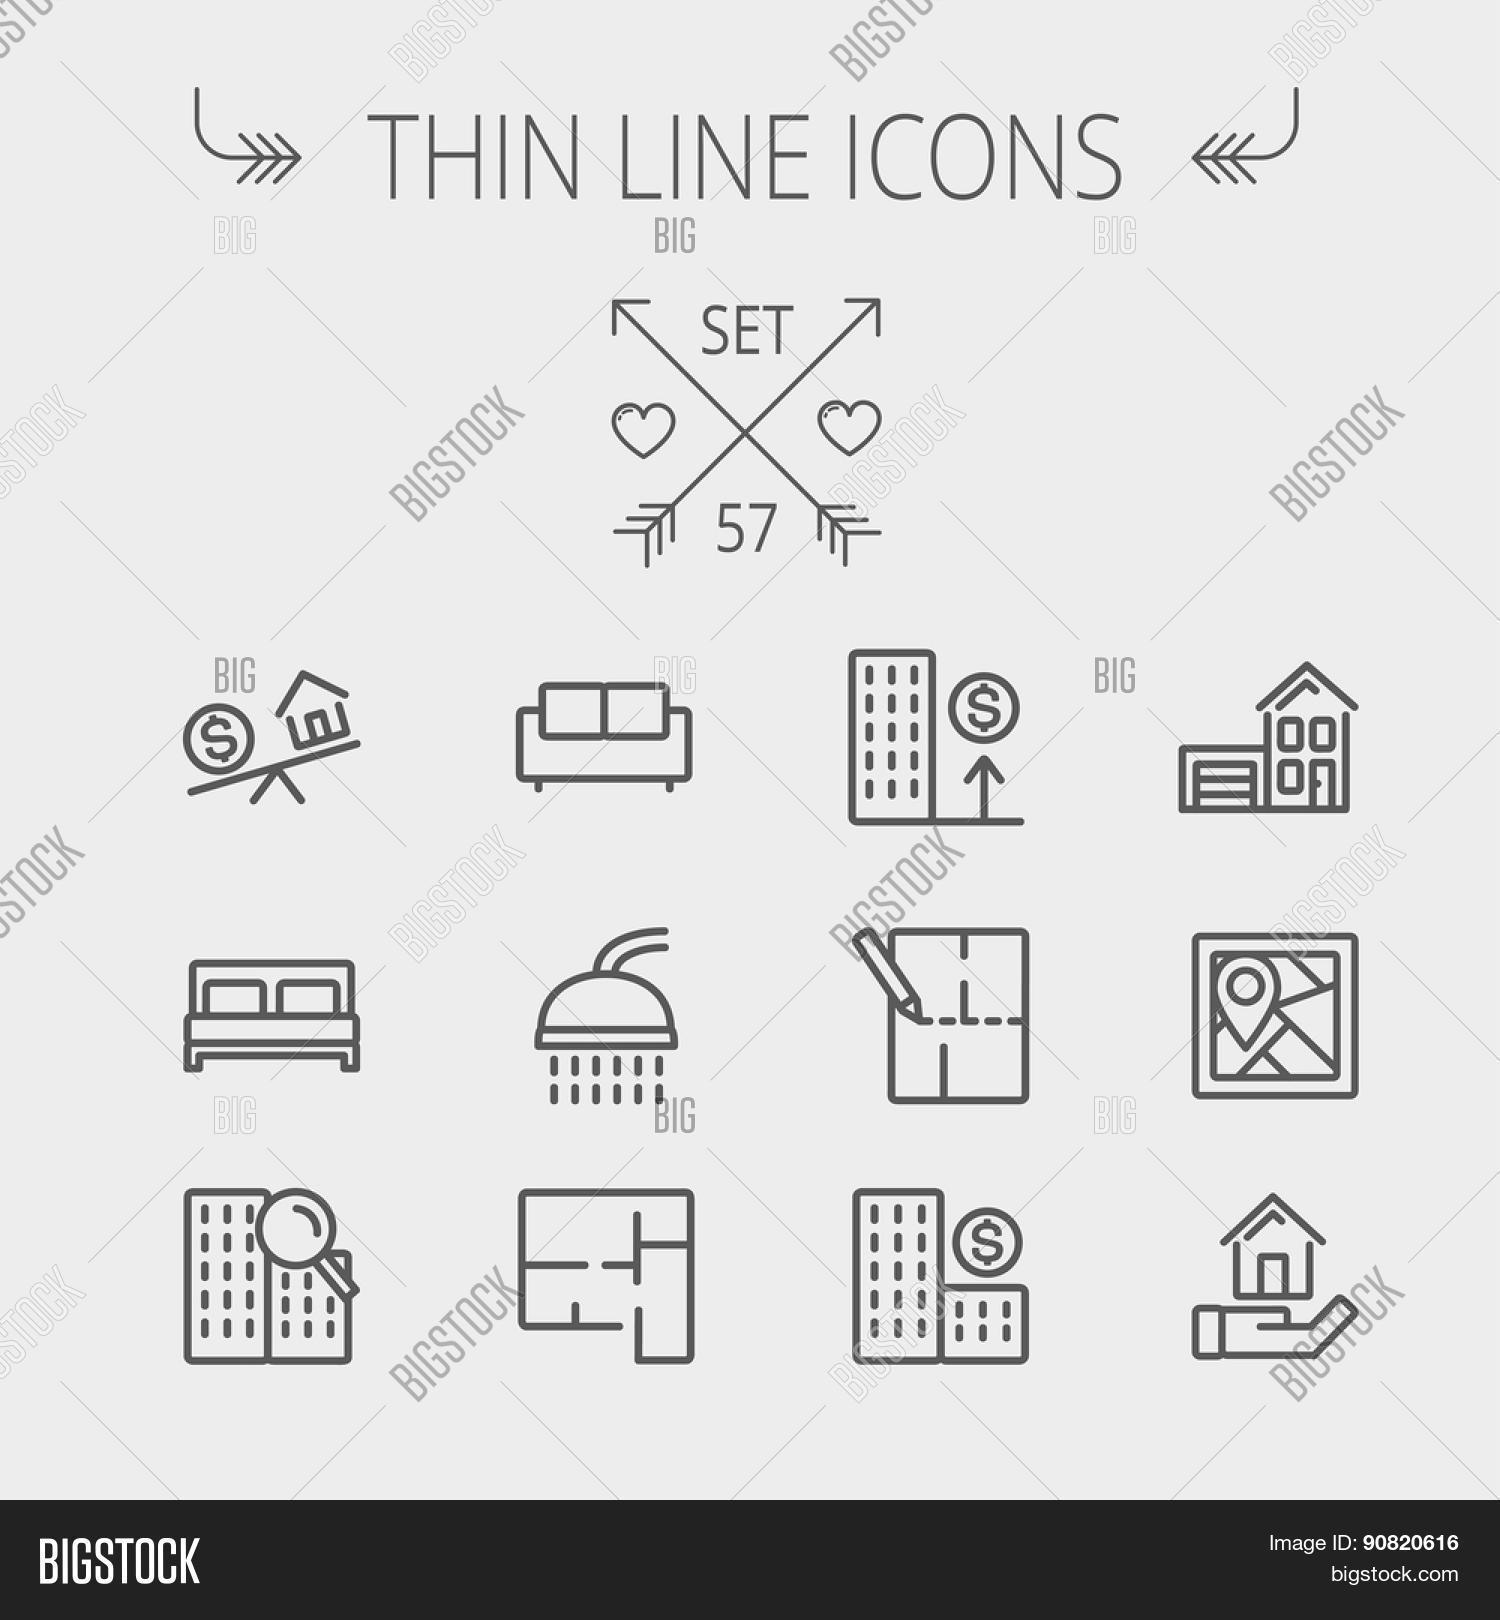 Real Estate Thin Line Vector & Photo (Free Trial) | Bigstock on bed lifters, bed texture, bed desktop, bed seat cushion, bed on beach, bed bolsters, bed people, bed queen, bed on stilts, bed cooler, bed bunker, bed railing, bed for disabled at home,